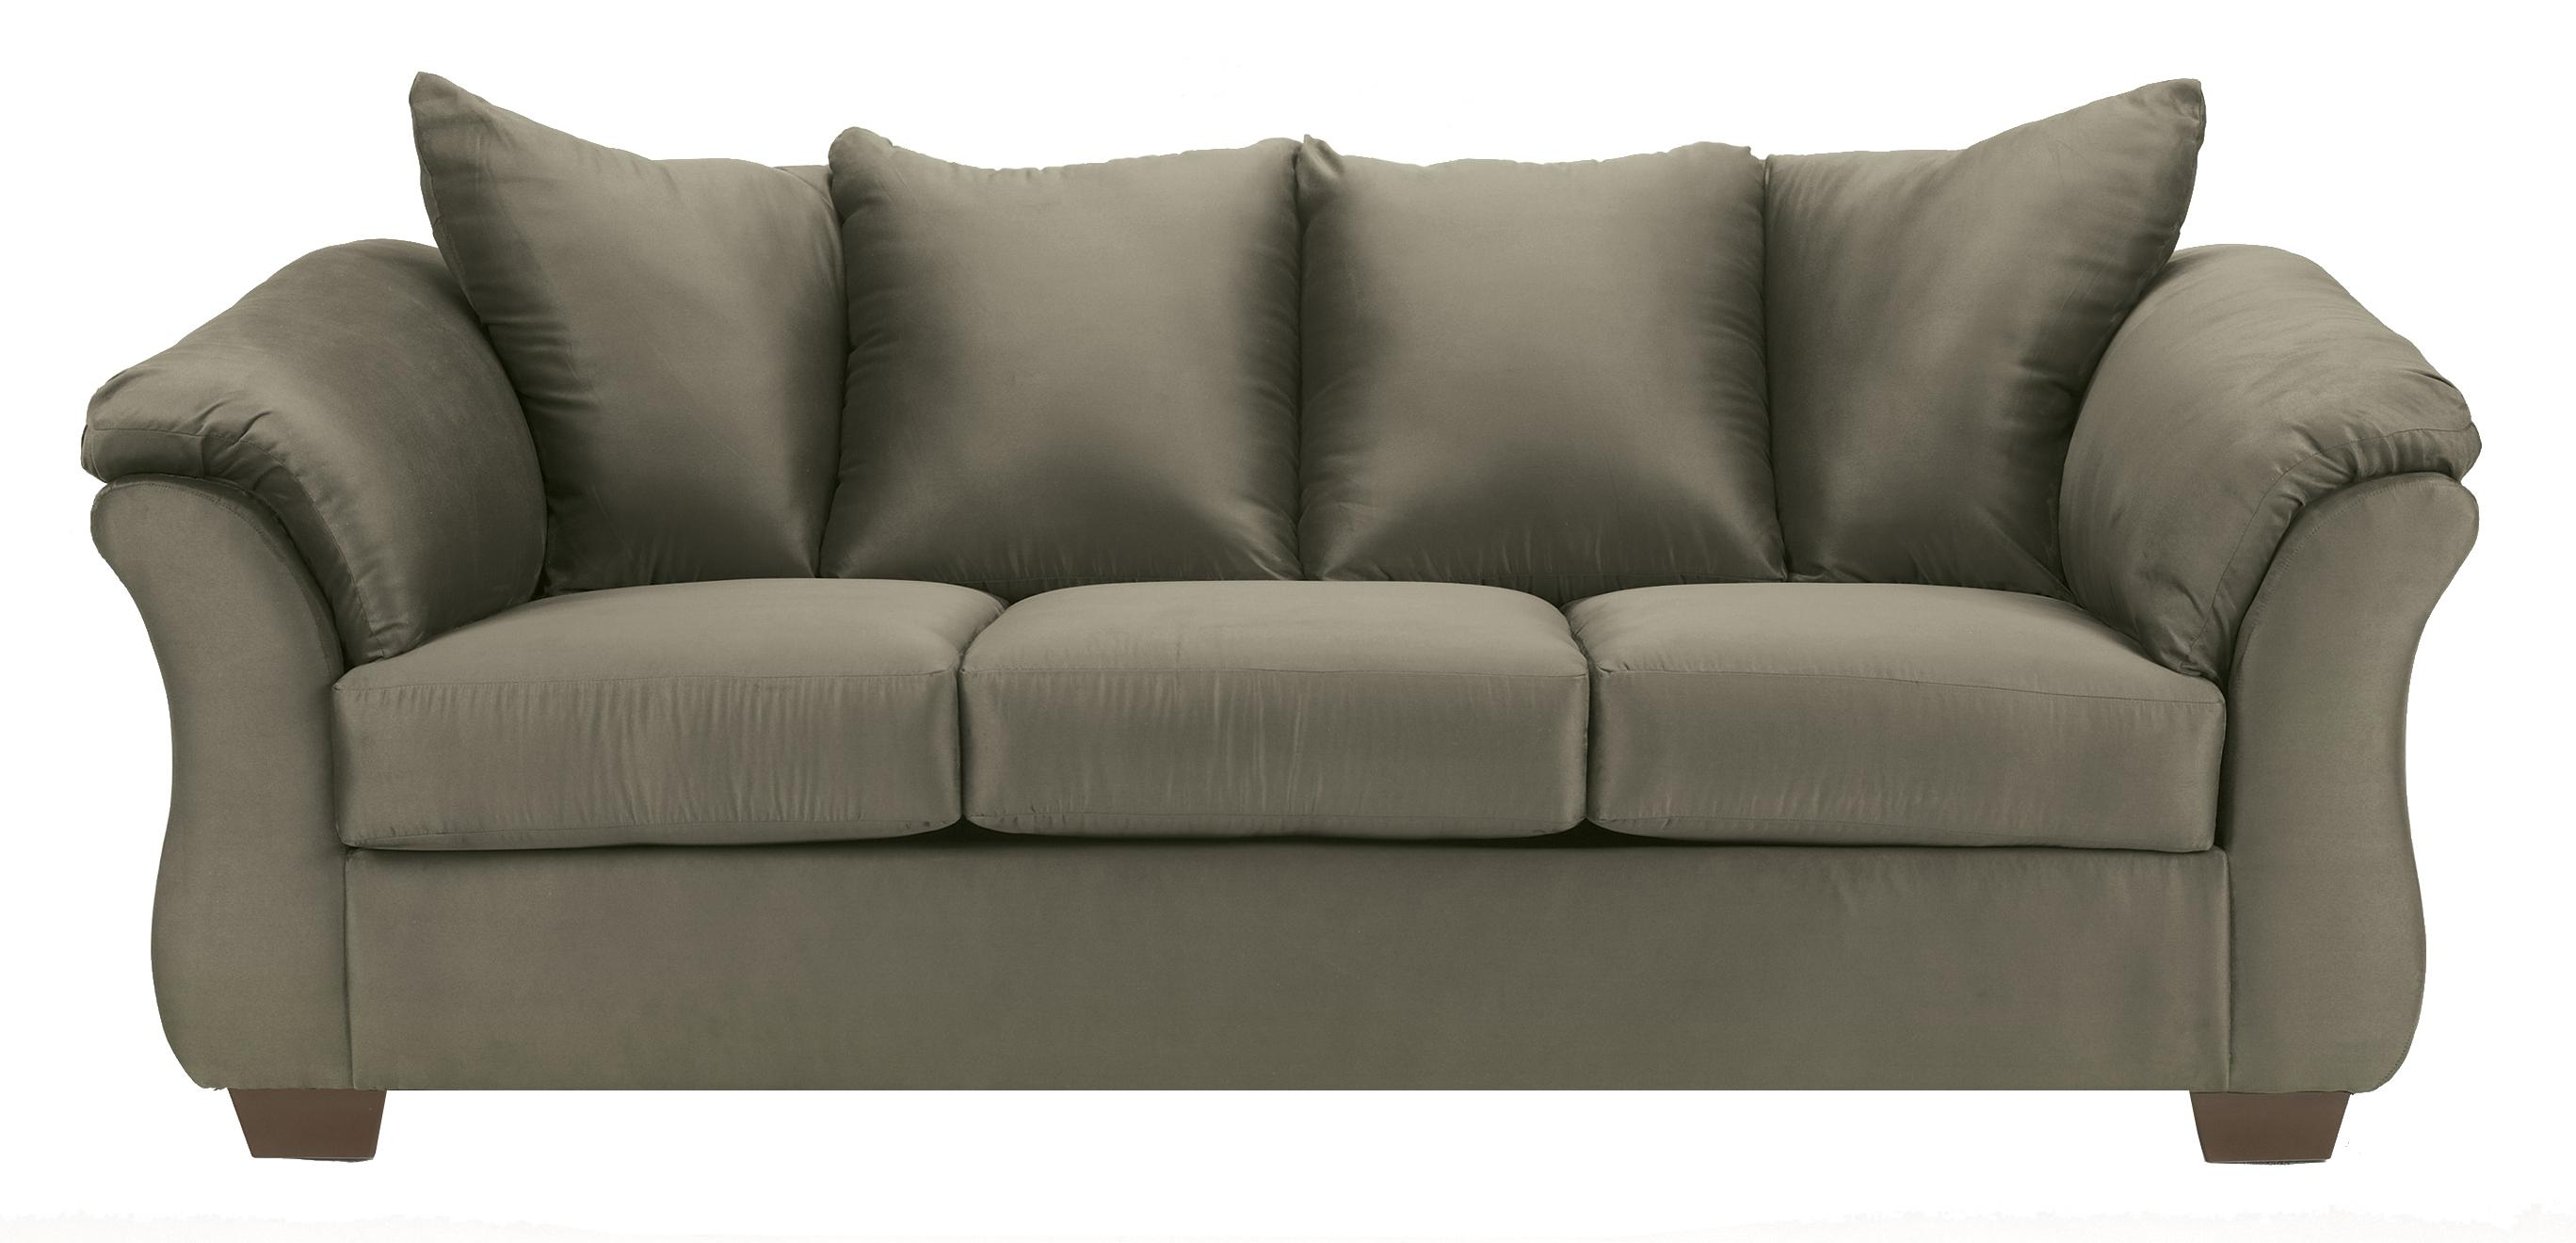 Signature Design by Ashley Furniture Darcy - Sage Stationary Sofa - Item Number: 7500338